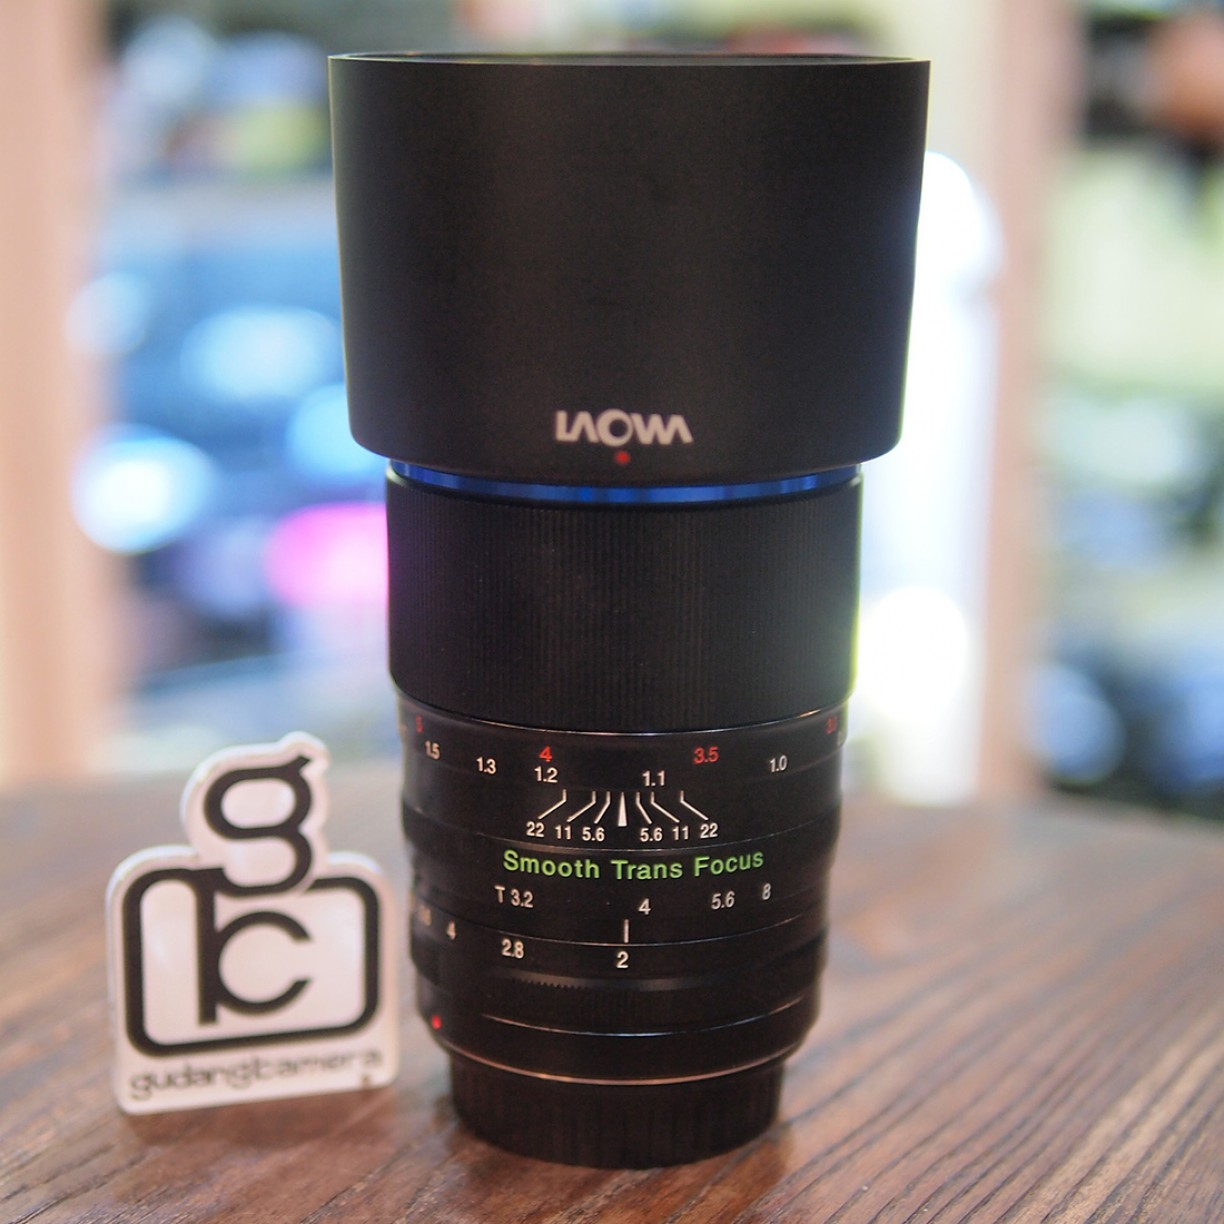 LAOWA 105mm F/2 FOR CANON - GOOD CONDITION - 0344